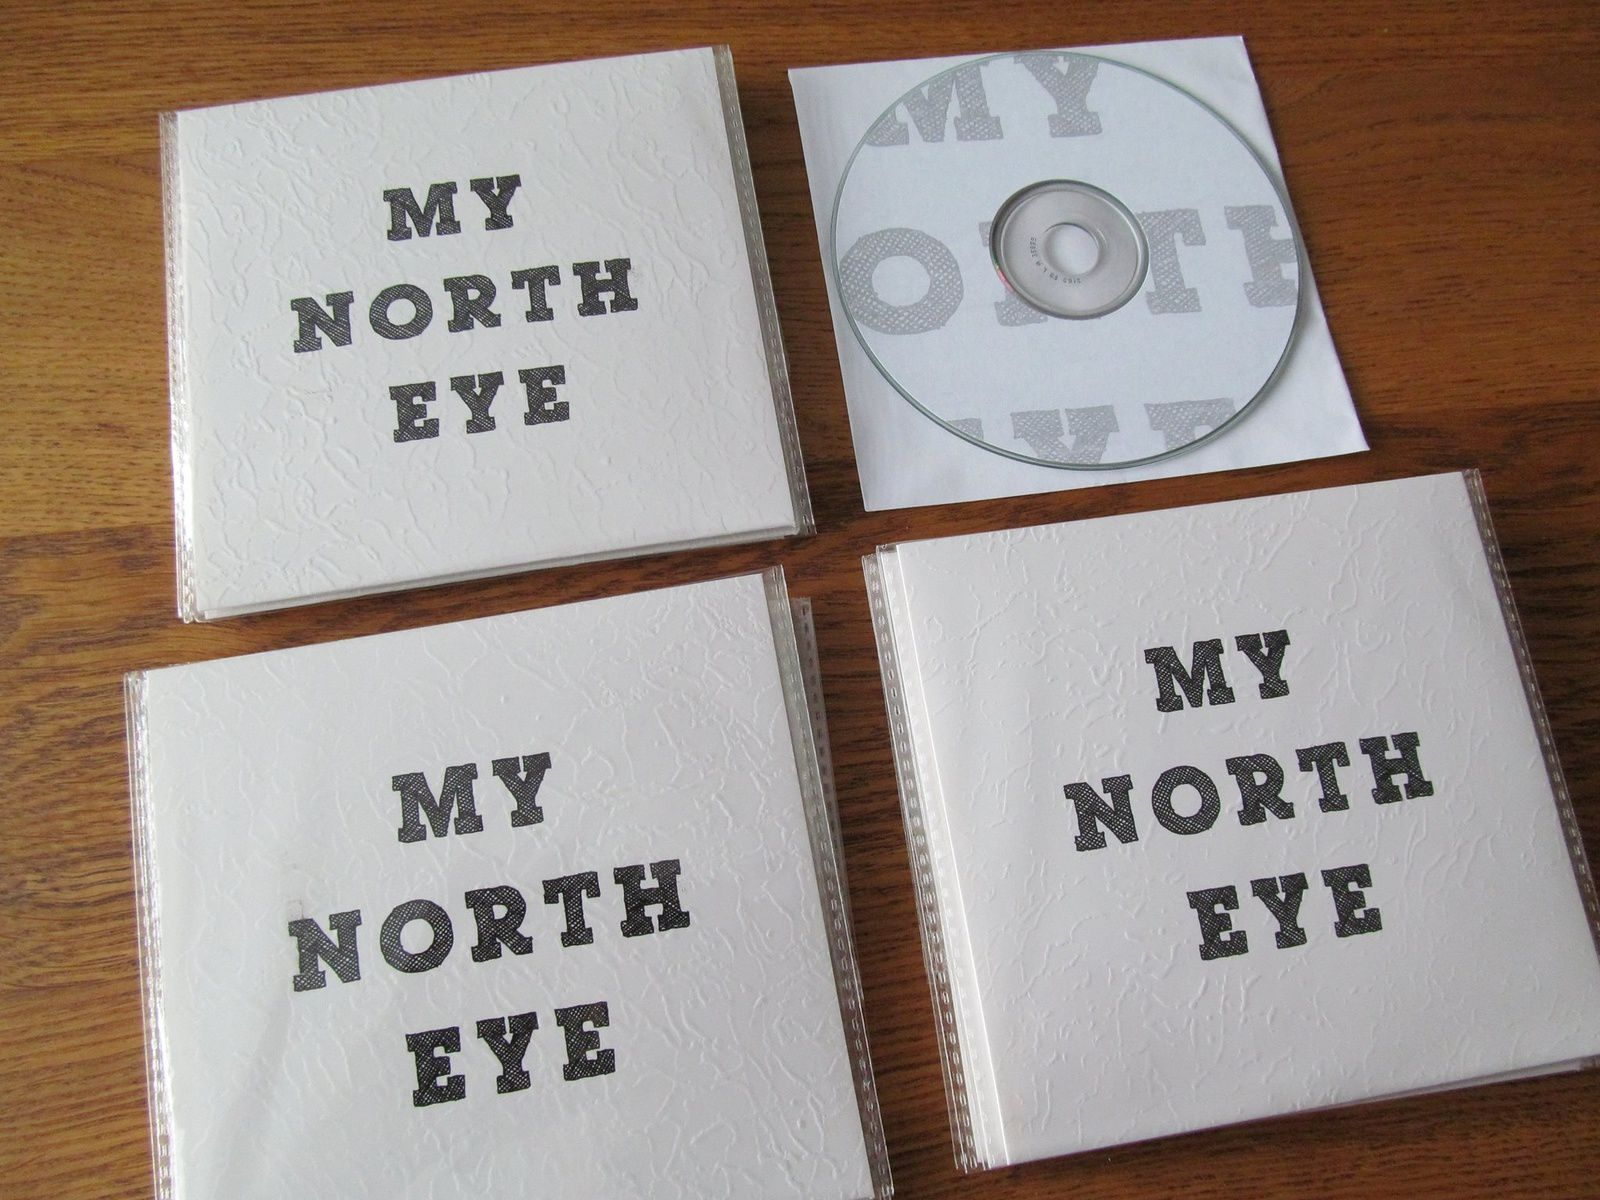 ▶ My north eye (F) @ Taille 33 record store - 25/02/2017 - 17h00 - Entrée gratuite !